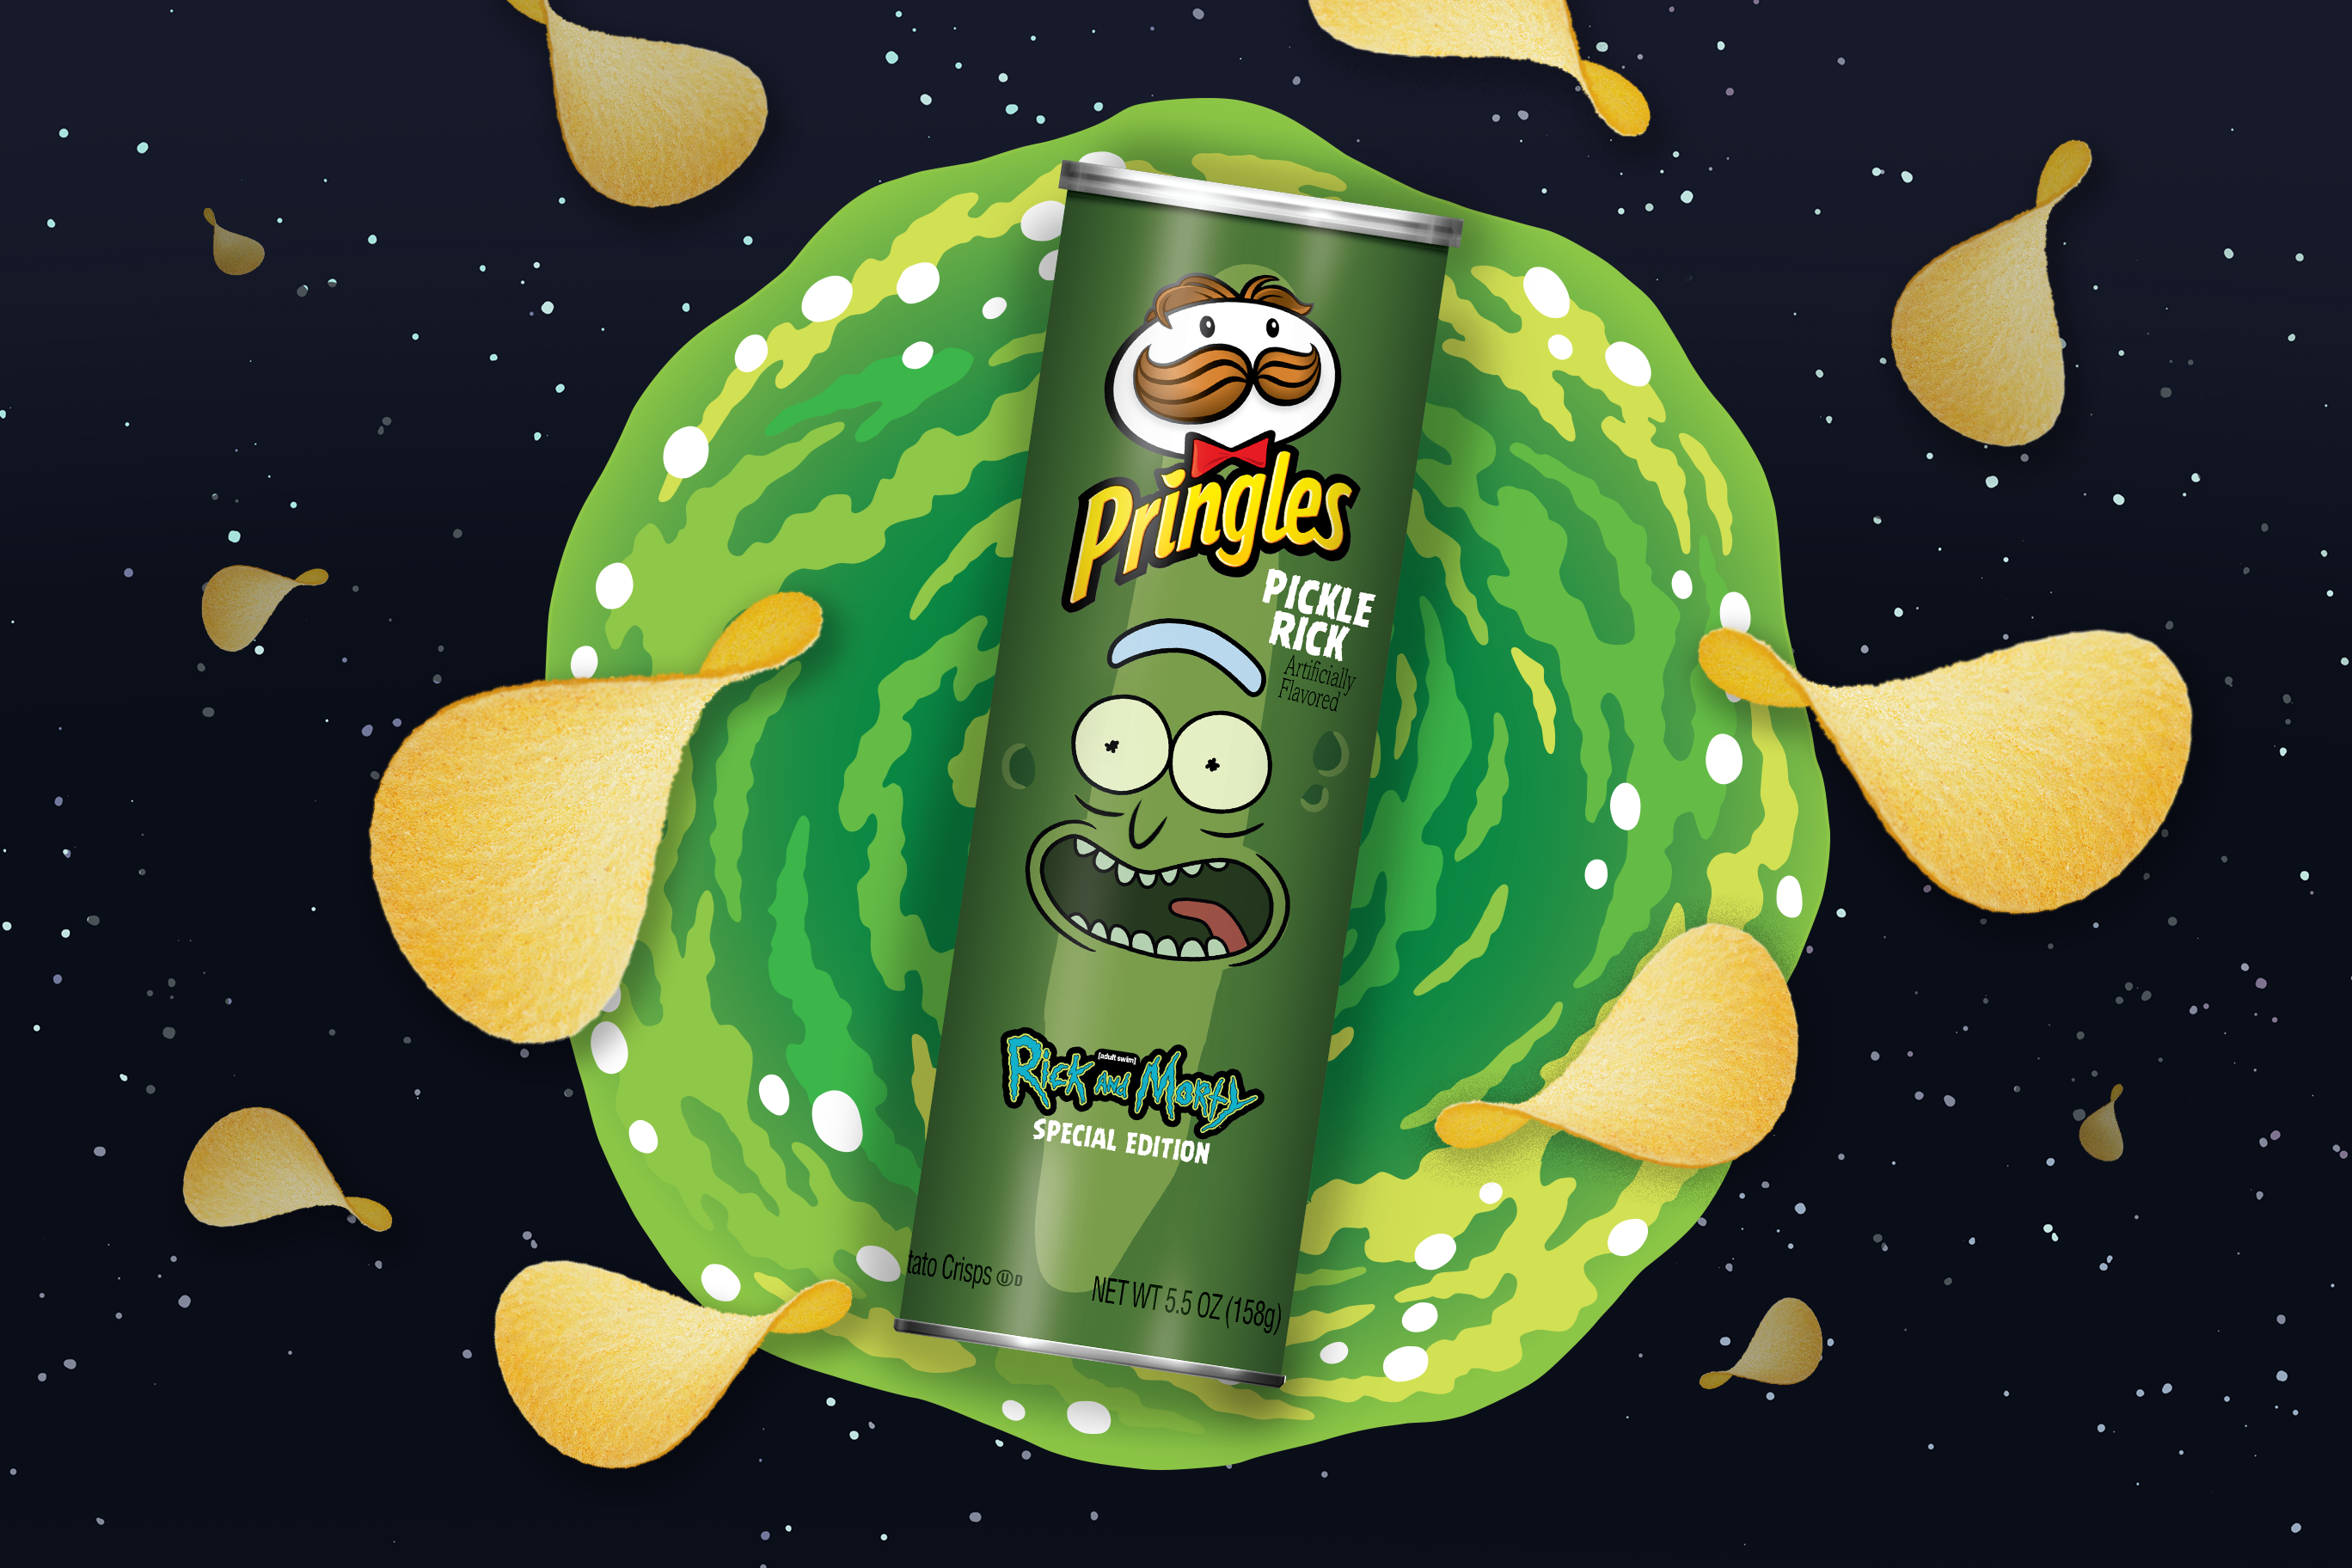 Pringles Is Bringing Back Pickle-Flavored Chips